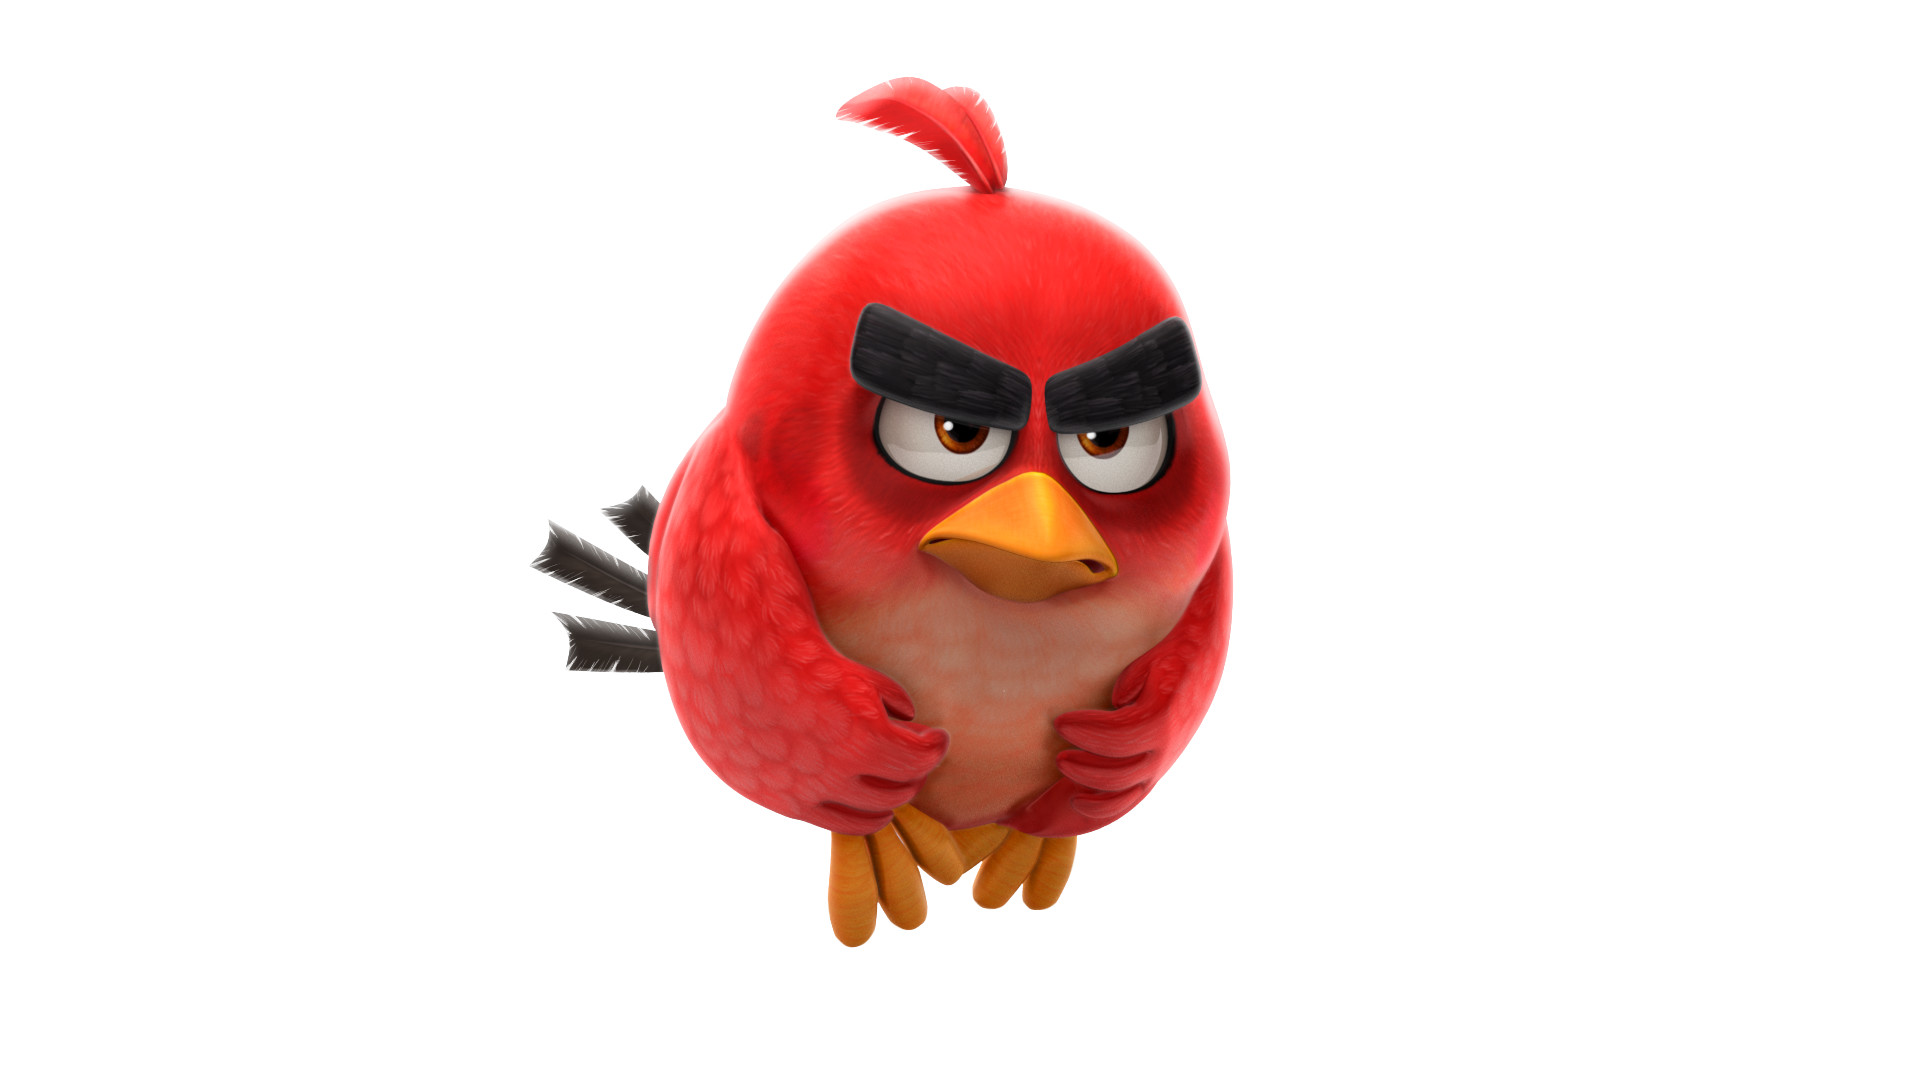 Promo Character Render. Angry Birds Action! Character texture, pose, lighting and render created by myself.